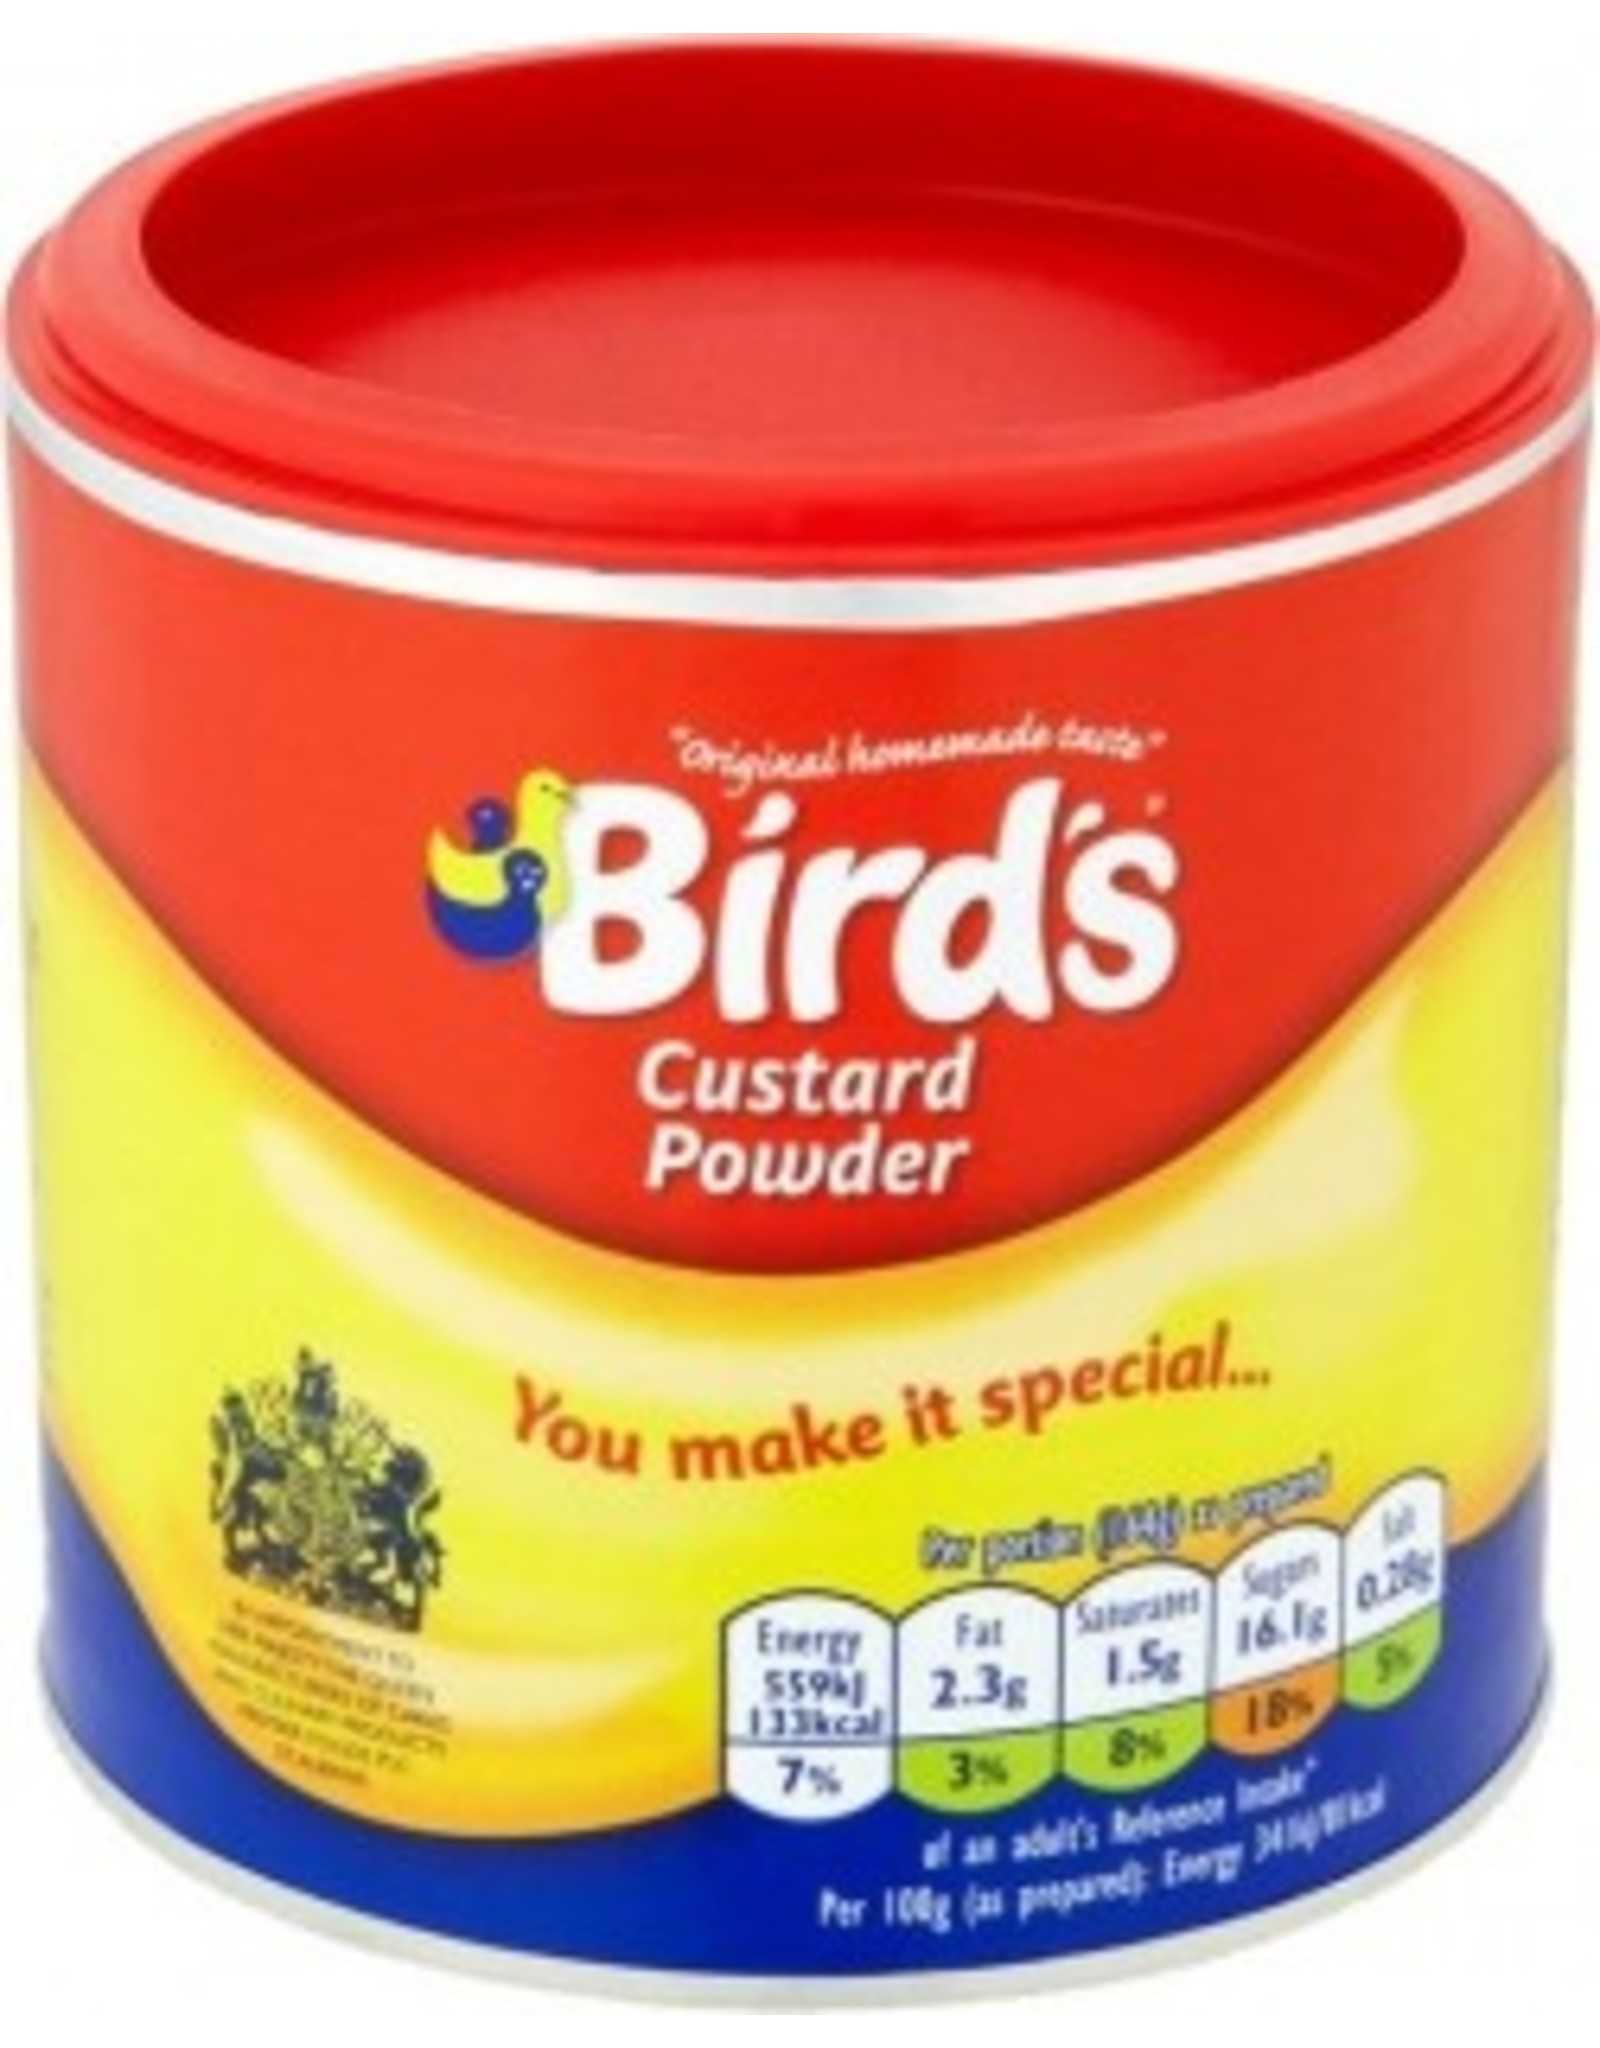 Birds Birds Custard Drum 300g